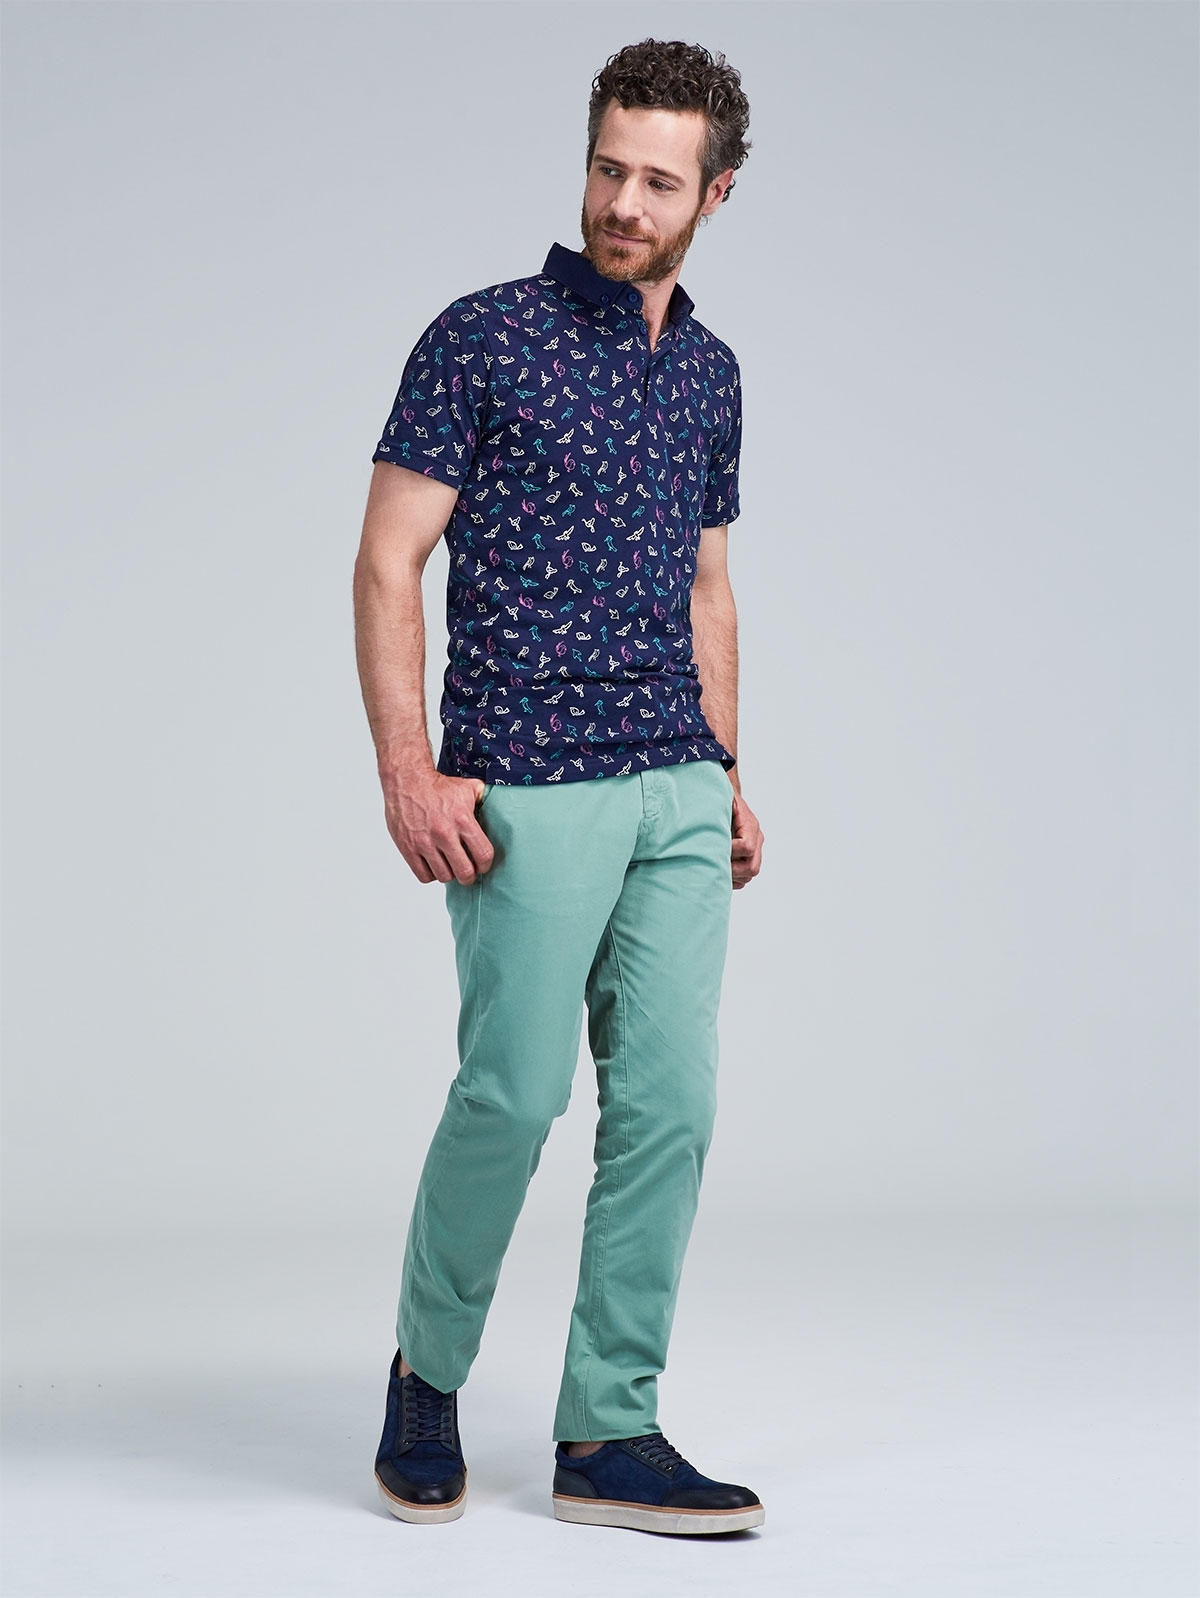 Pantalón Casual 440 Colors Regular Fit para hombre